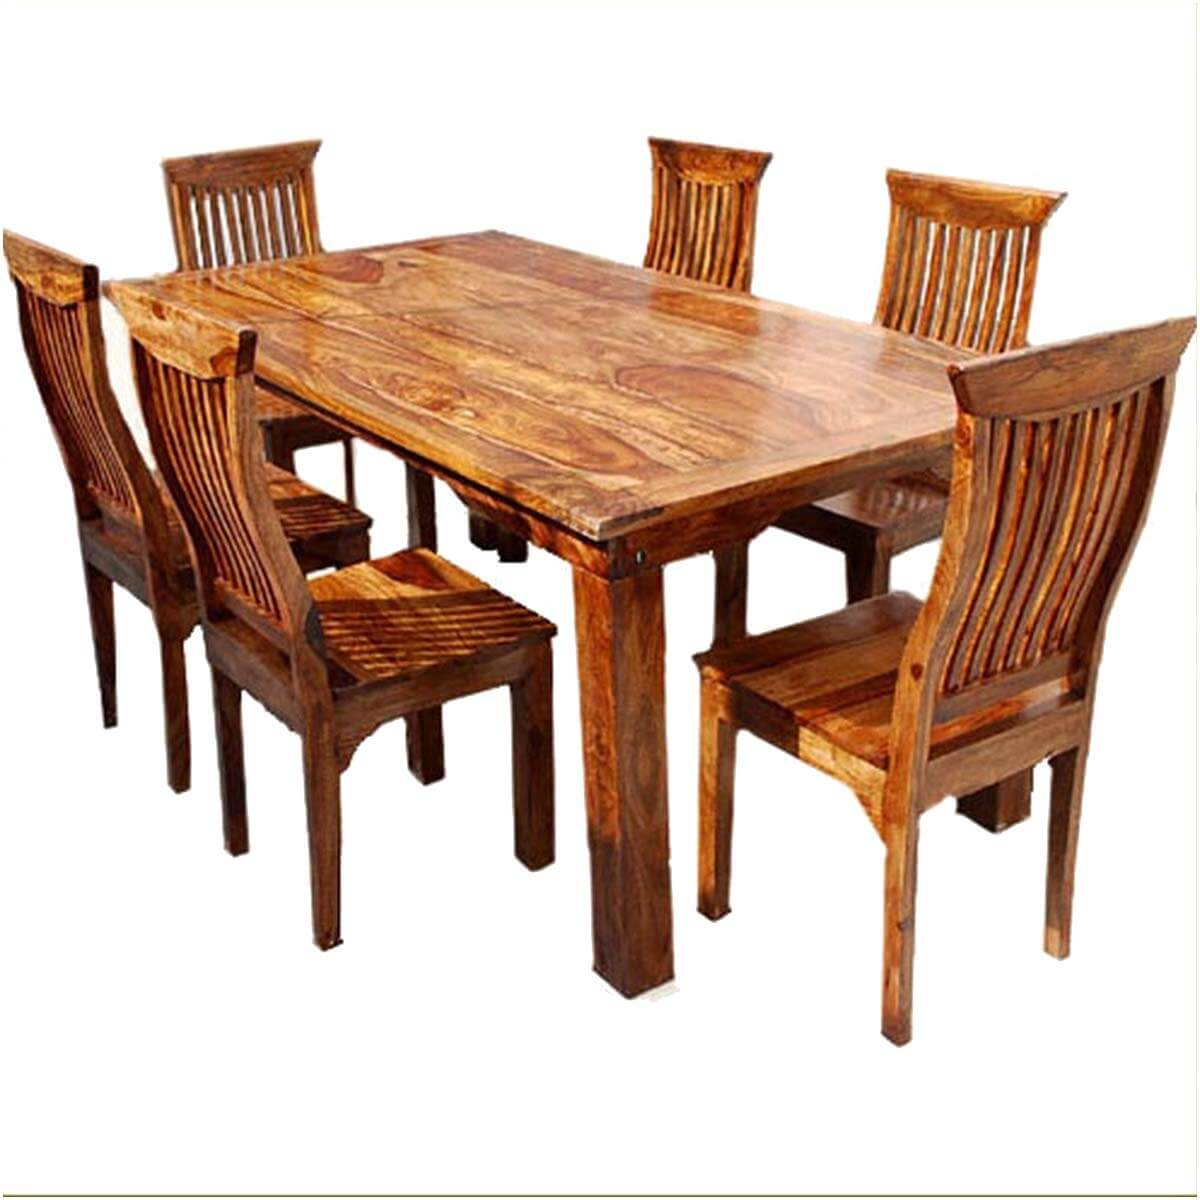 dallas ranch solid wood rustic dining table chairs hutch set. Black Bedroom Furniture Sets. Home Design Ideas